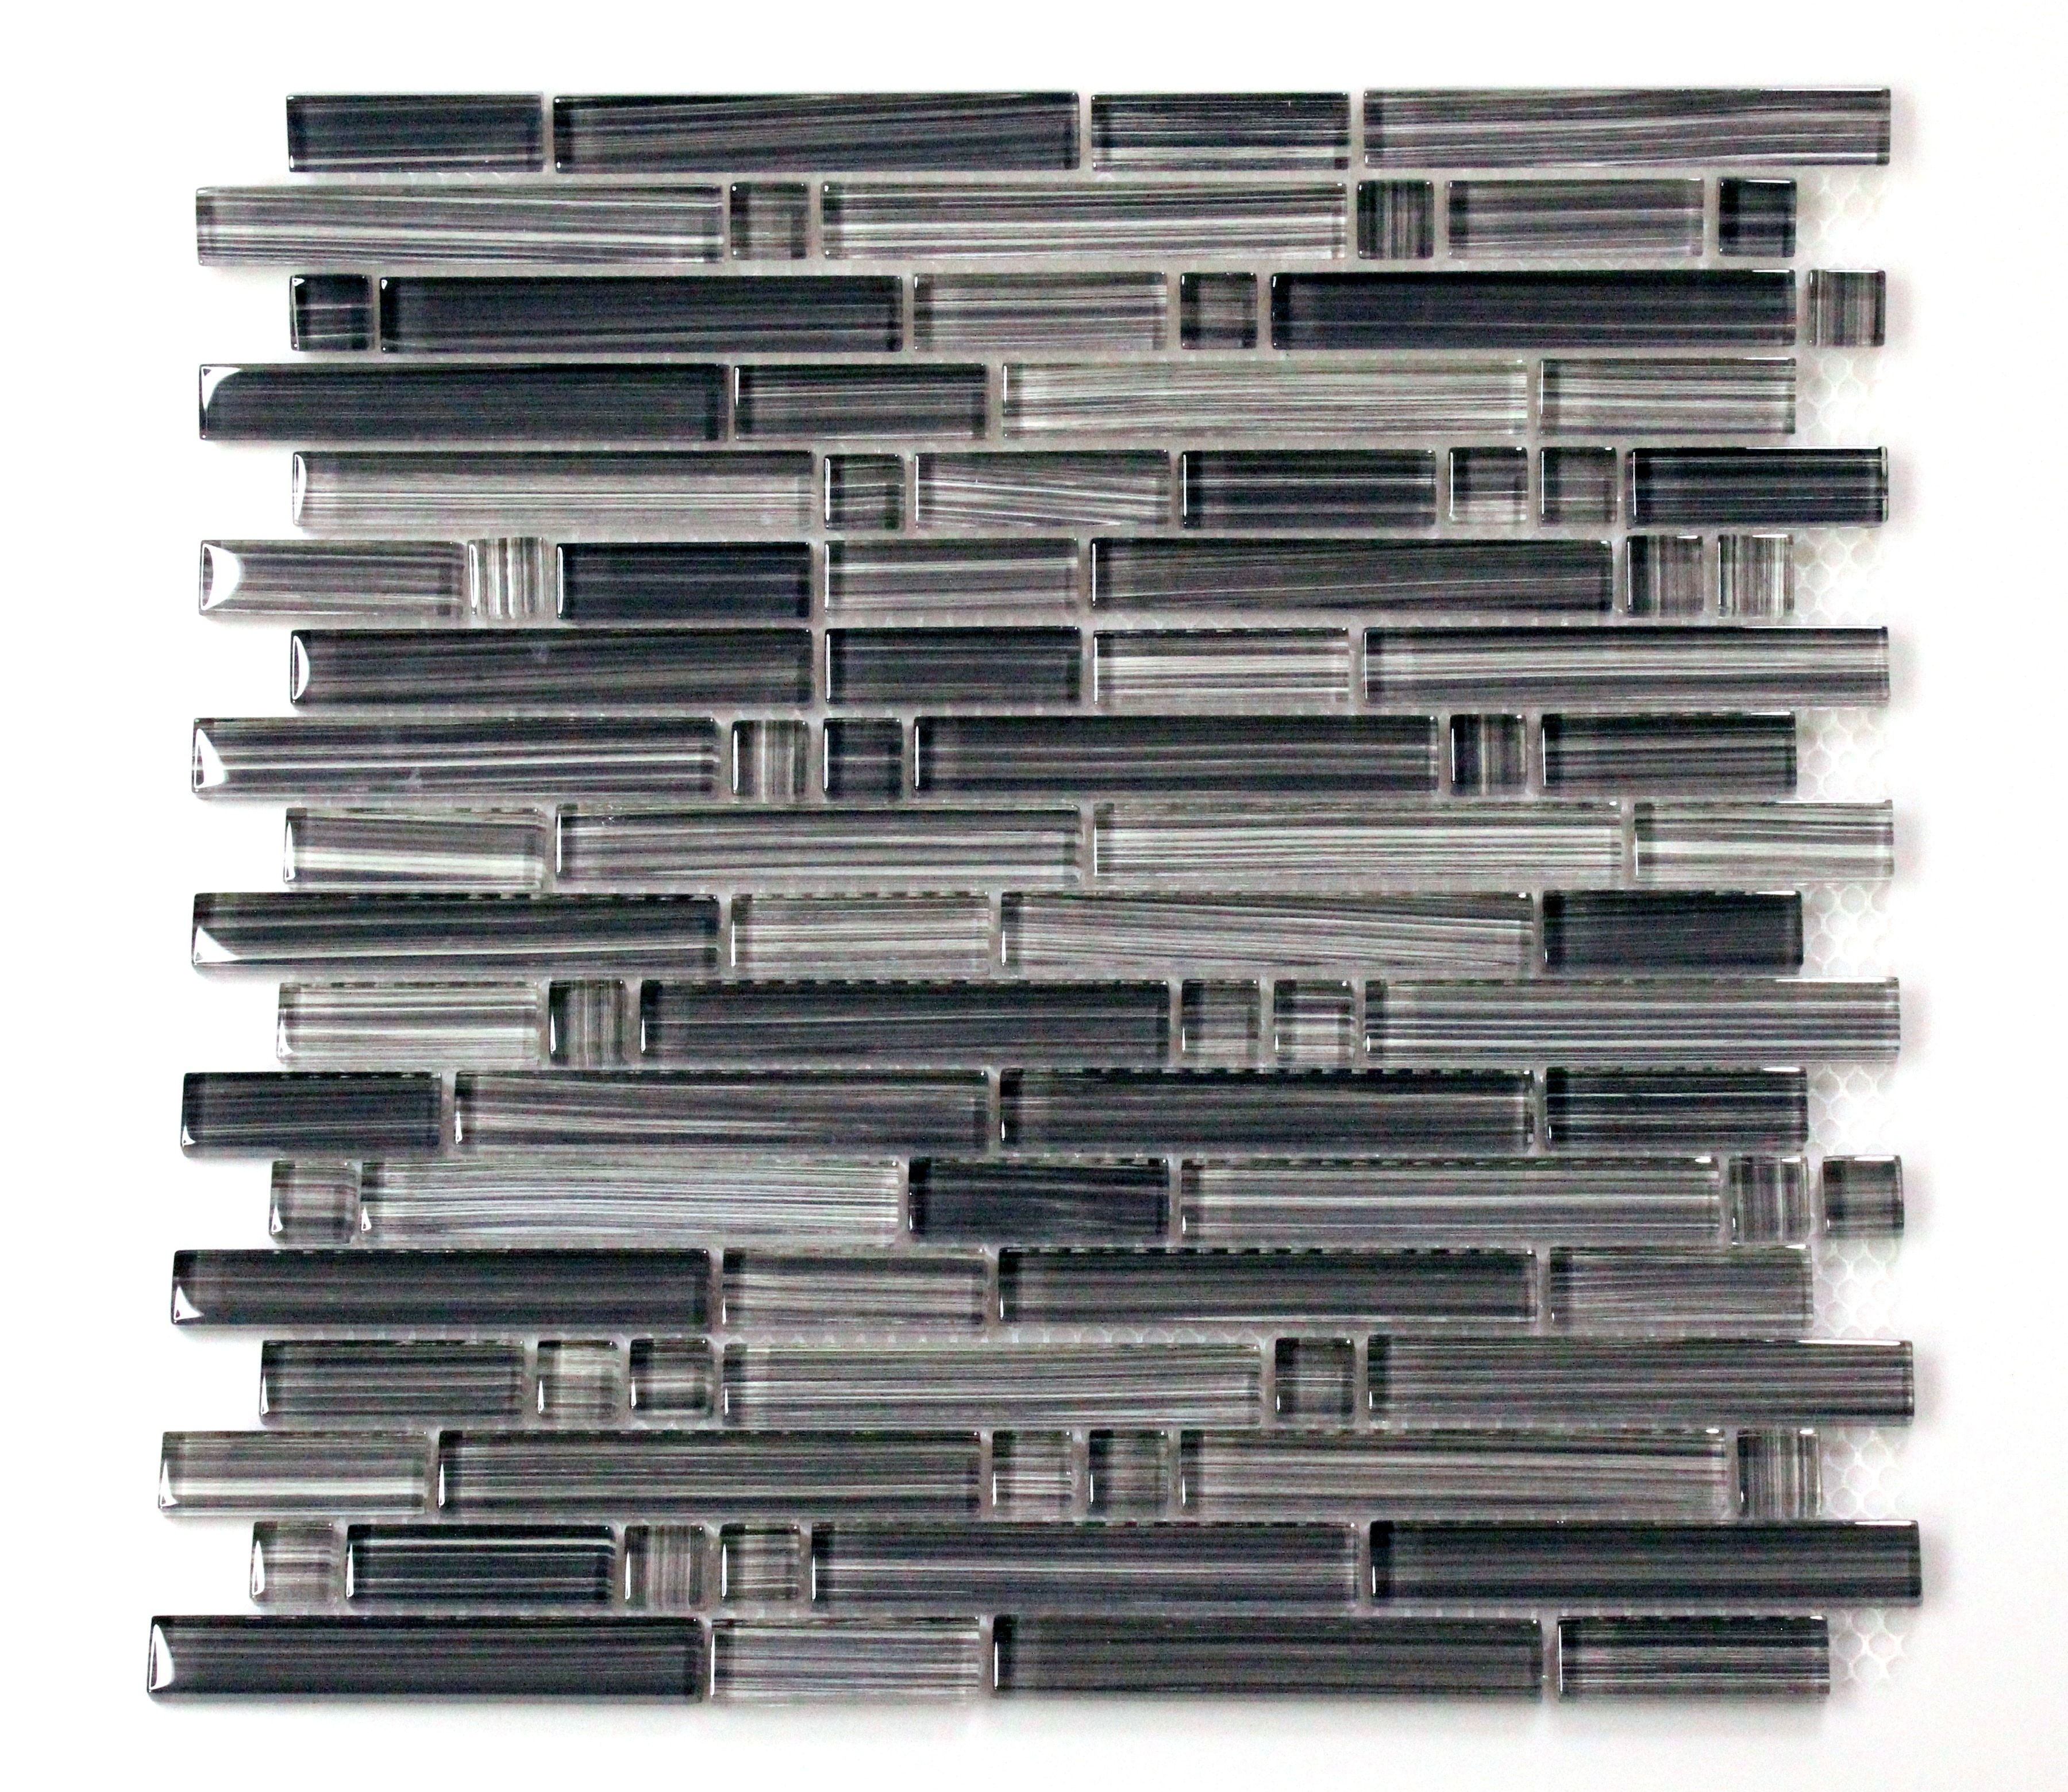 Glass Mosaic / 12 x 12 x 0.31 inches / Glossy Interlocking Random Sized Glass Mosaic Tile In Hand Painted Gray 0